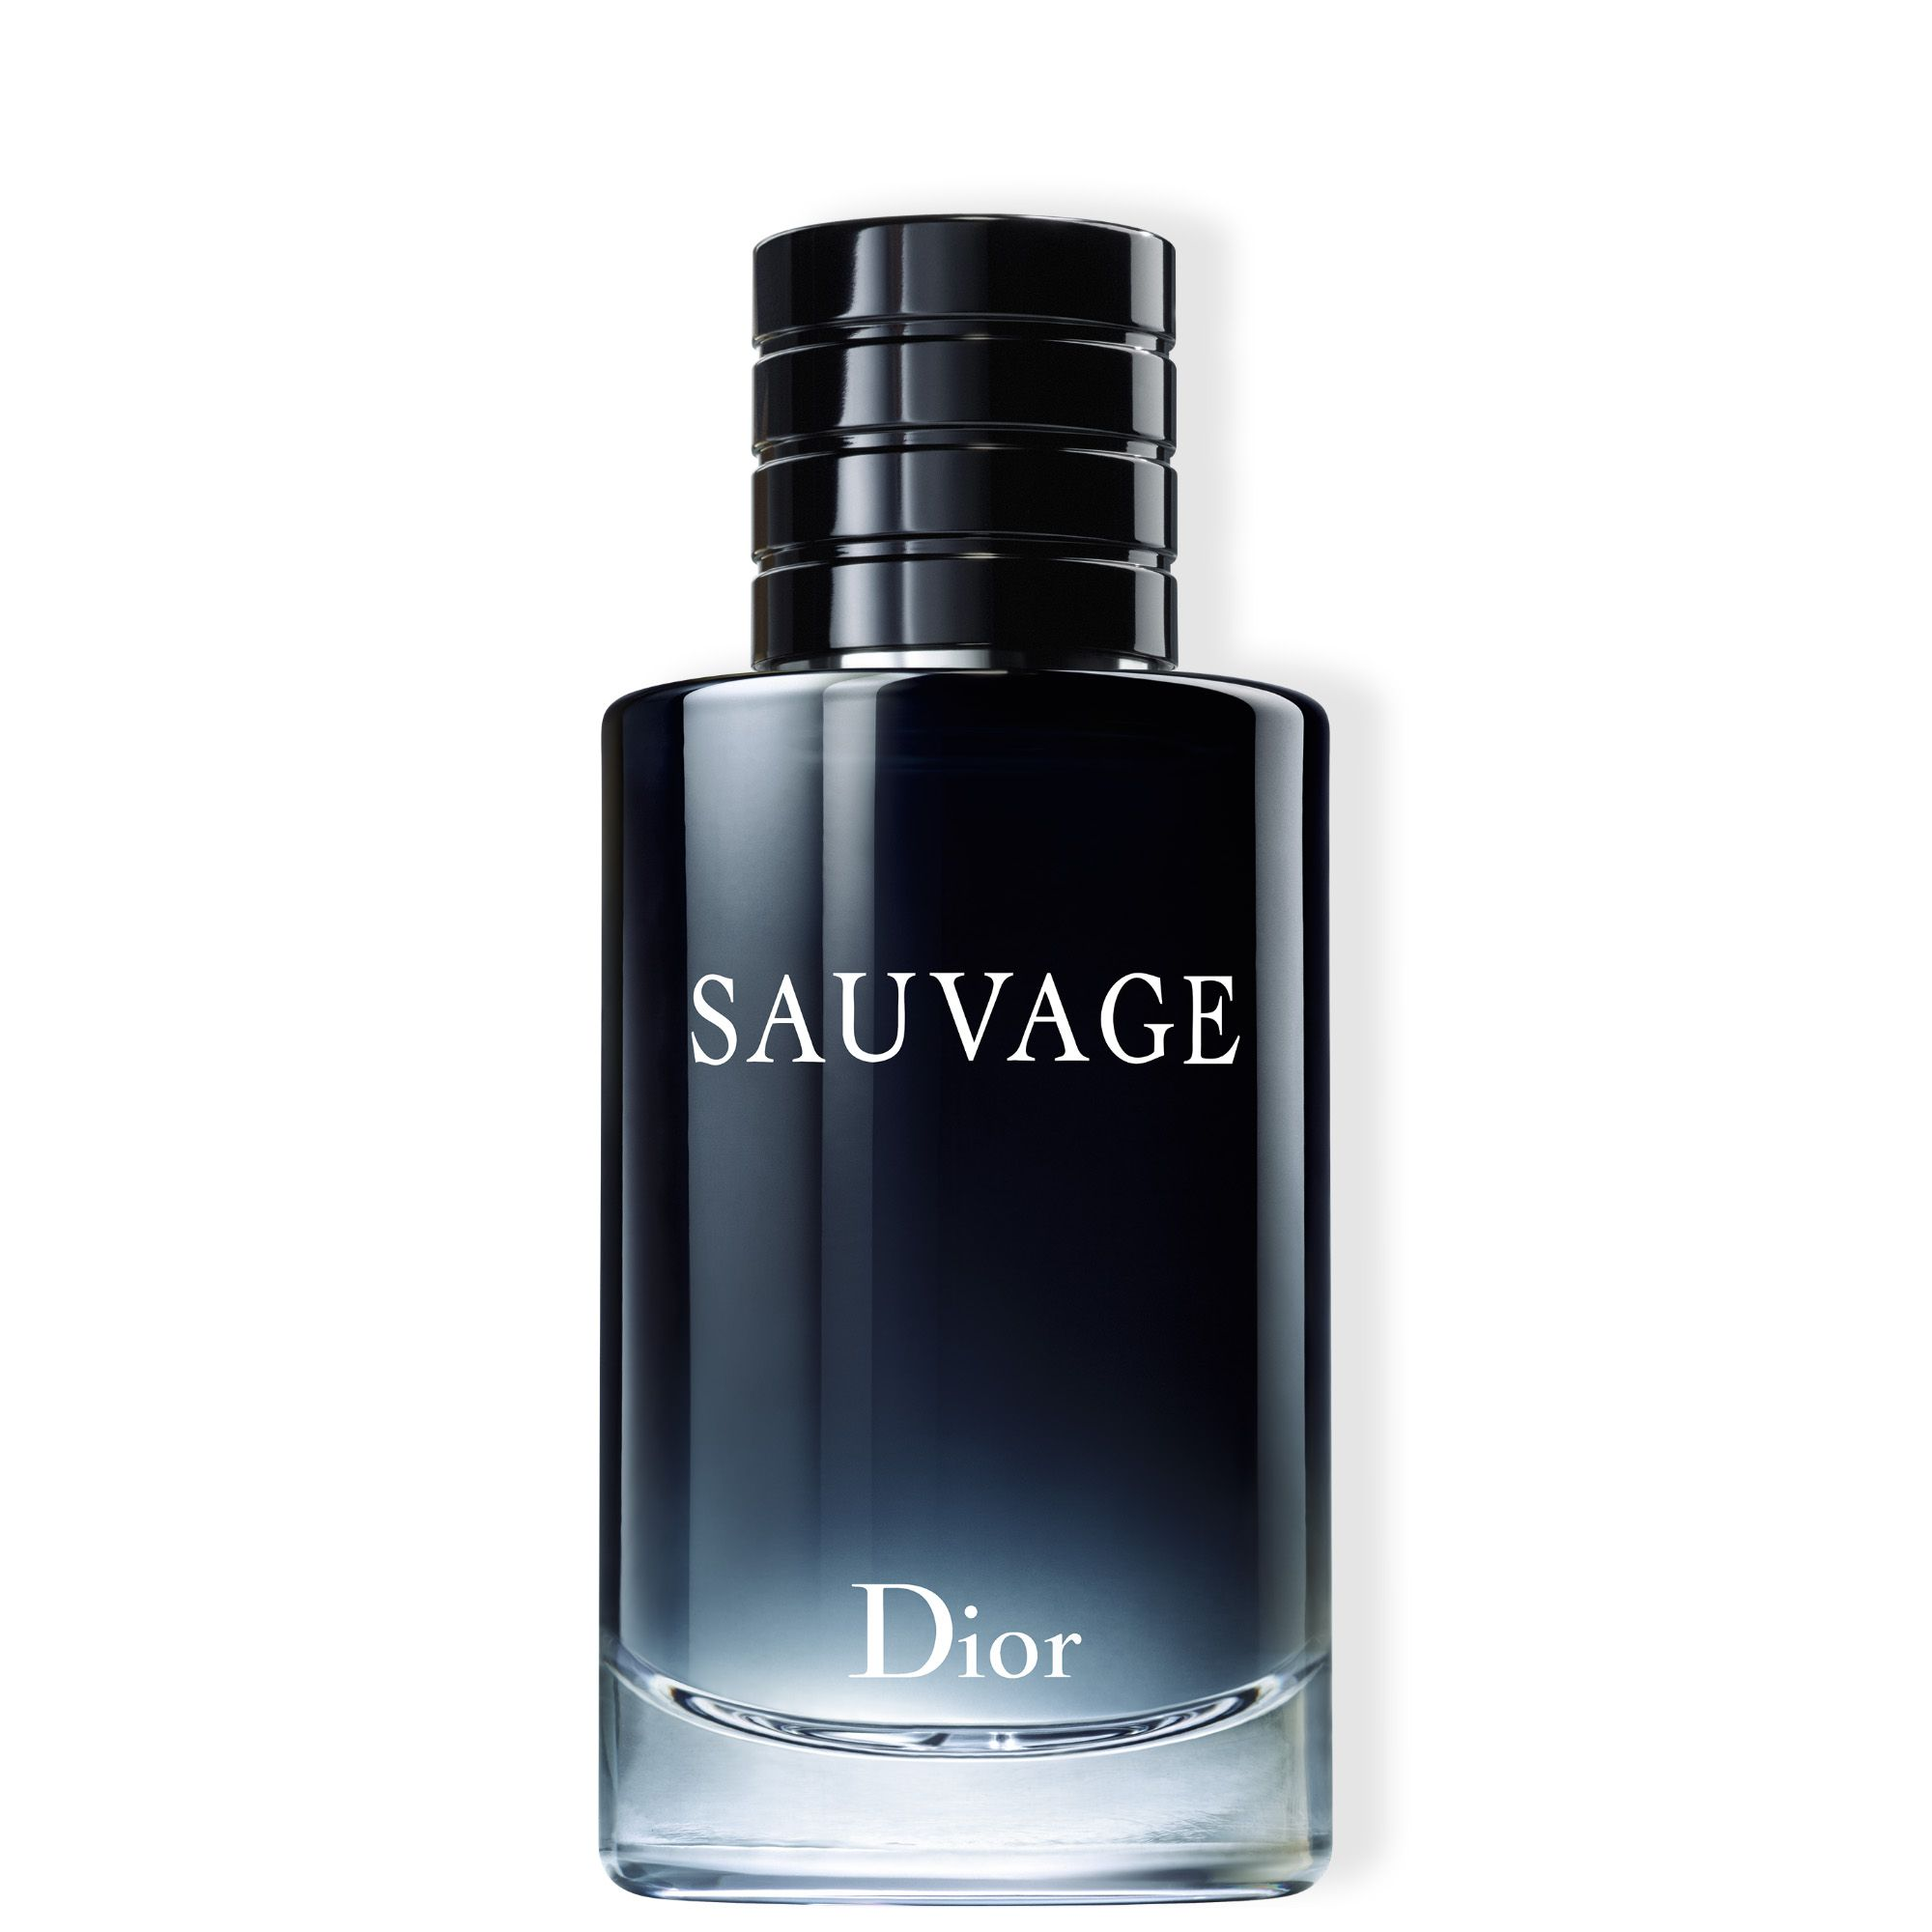 Mens Aftershave Fragrance House Of Fraser Parfum Zara For Him Silver Collection Man Dior Sauvage Eau De Toilette 100ml